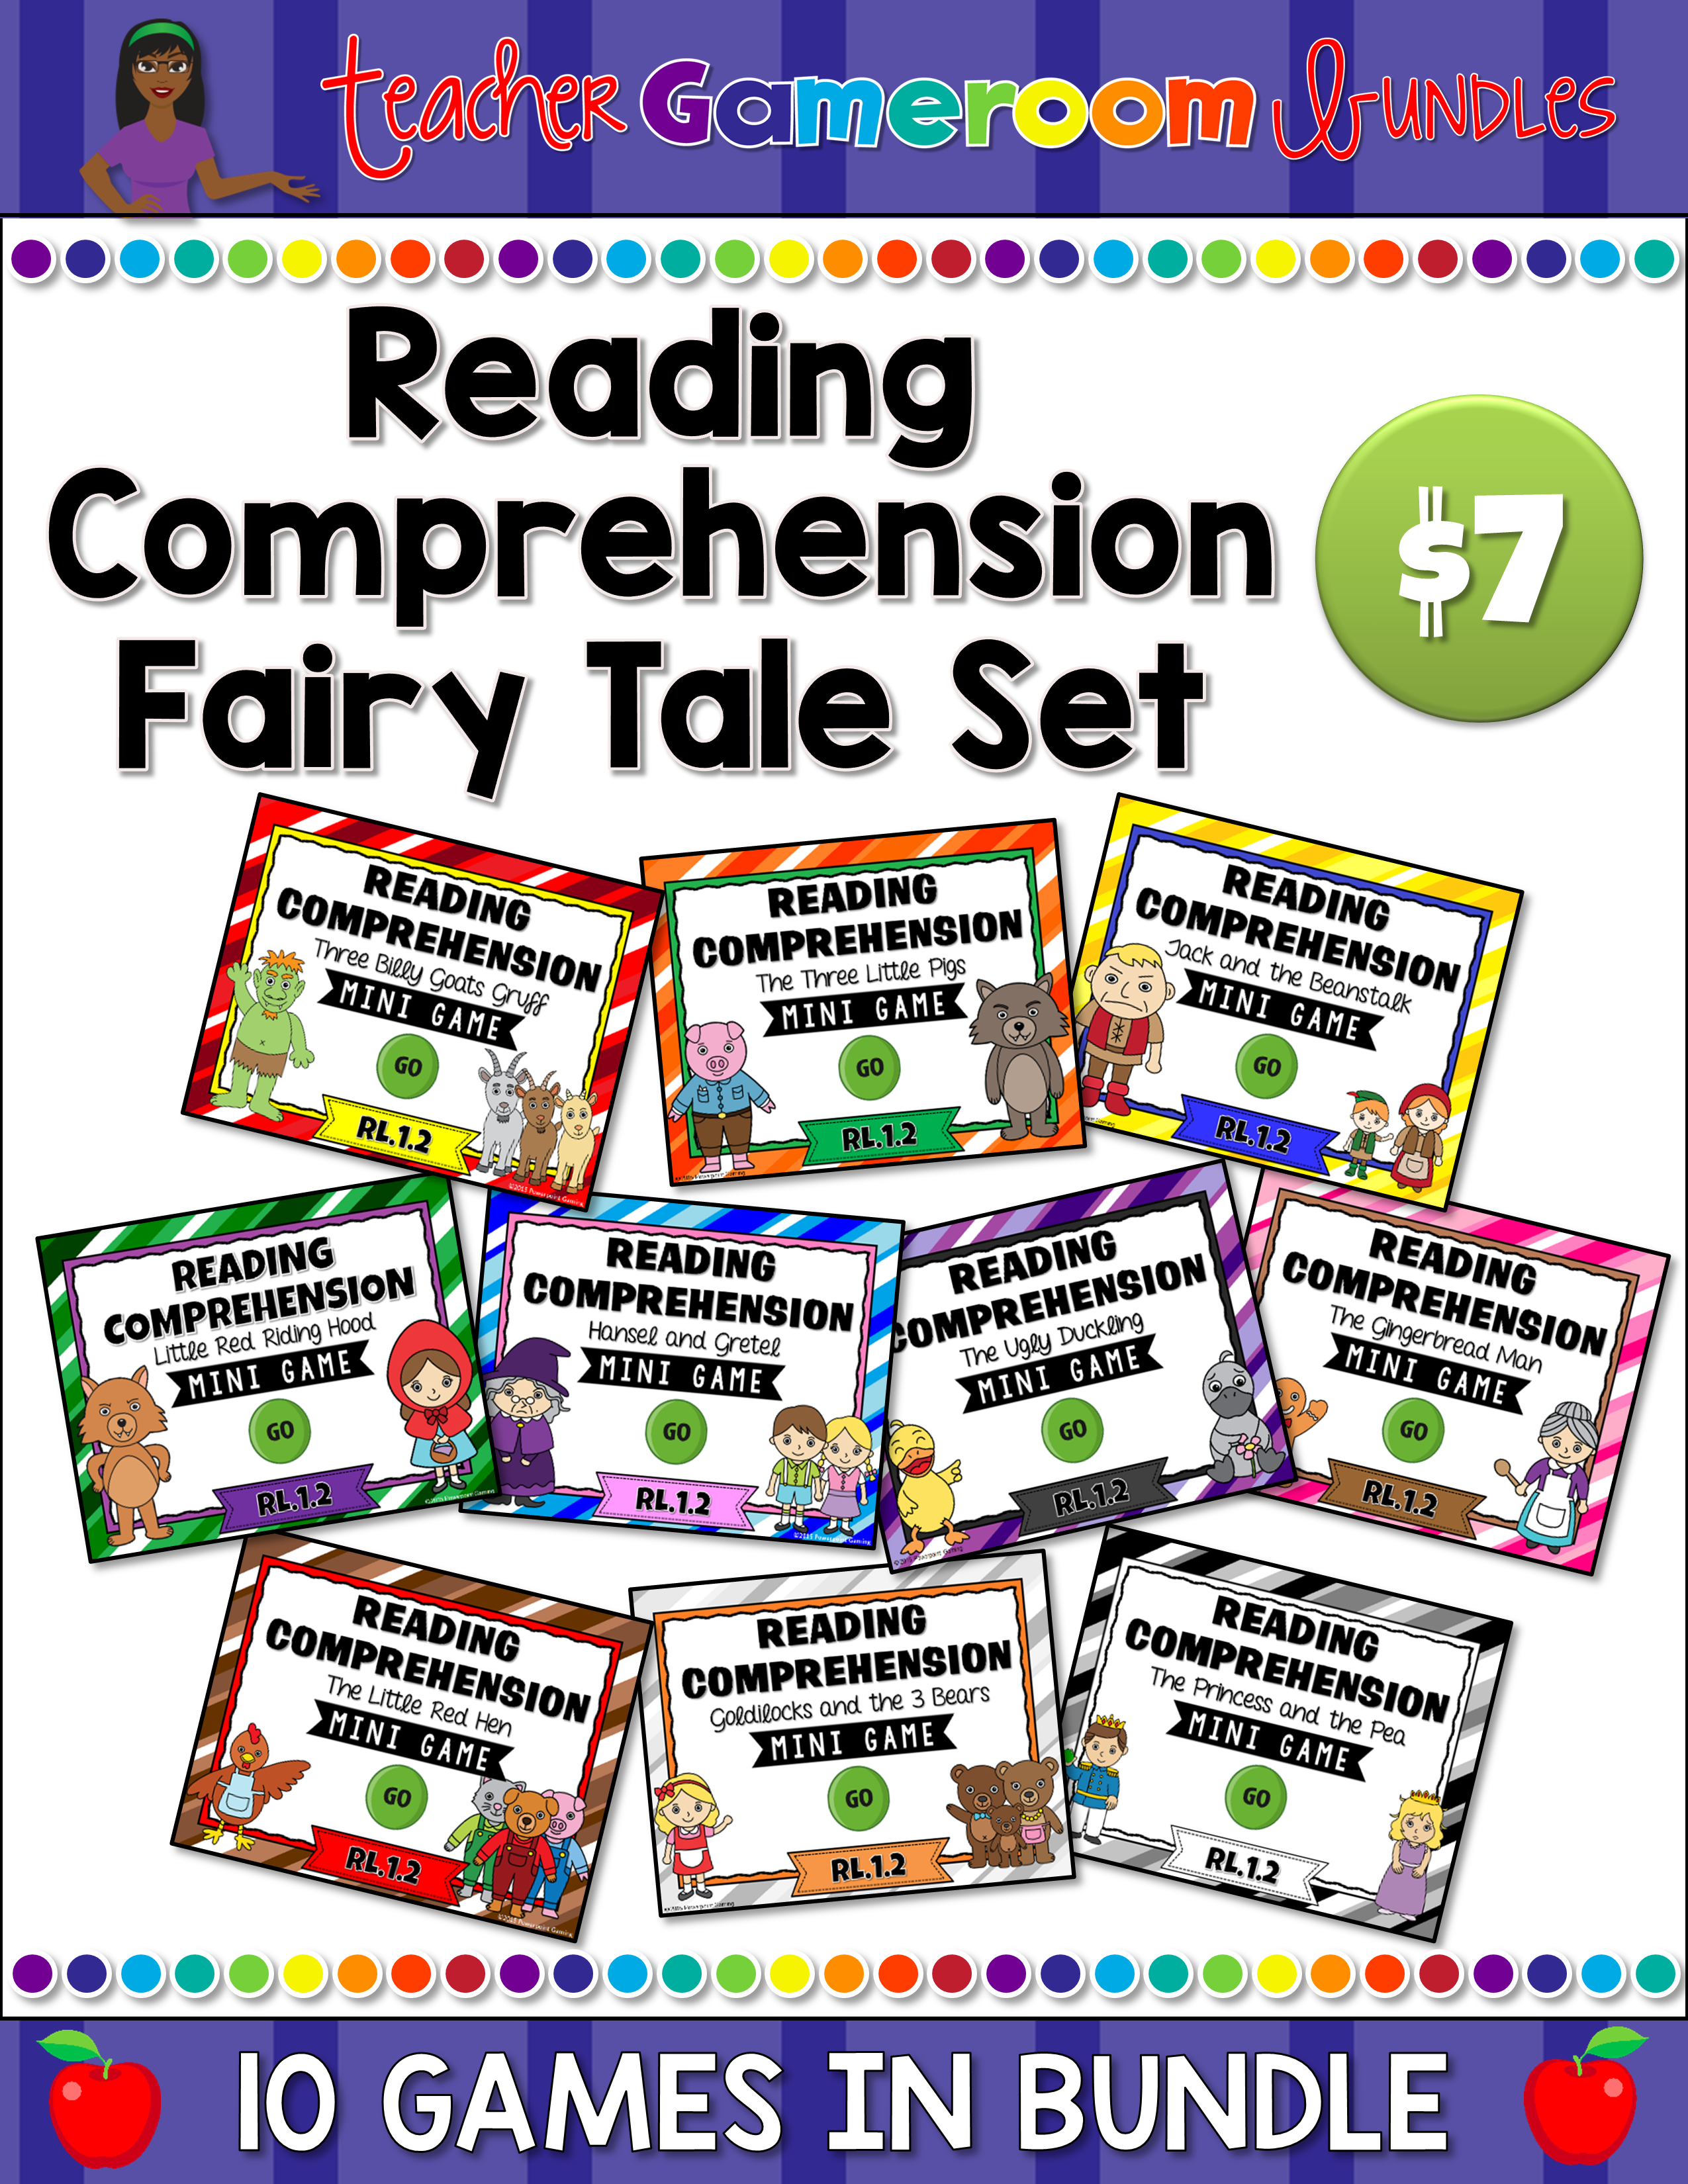 Faily Tale Reading Comprehension Bundle